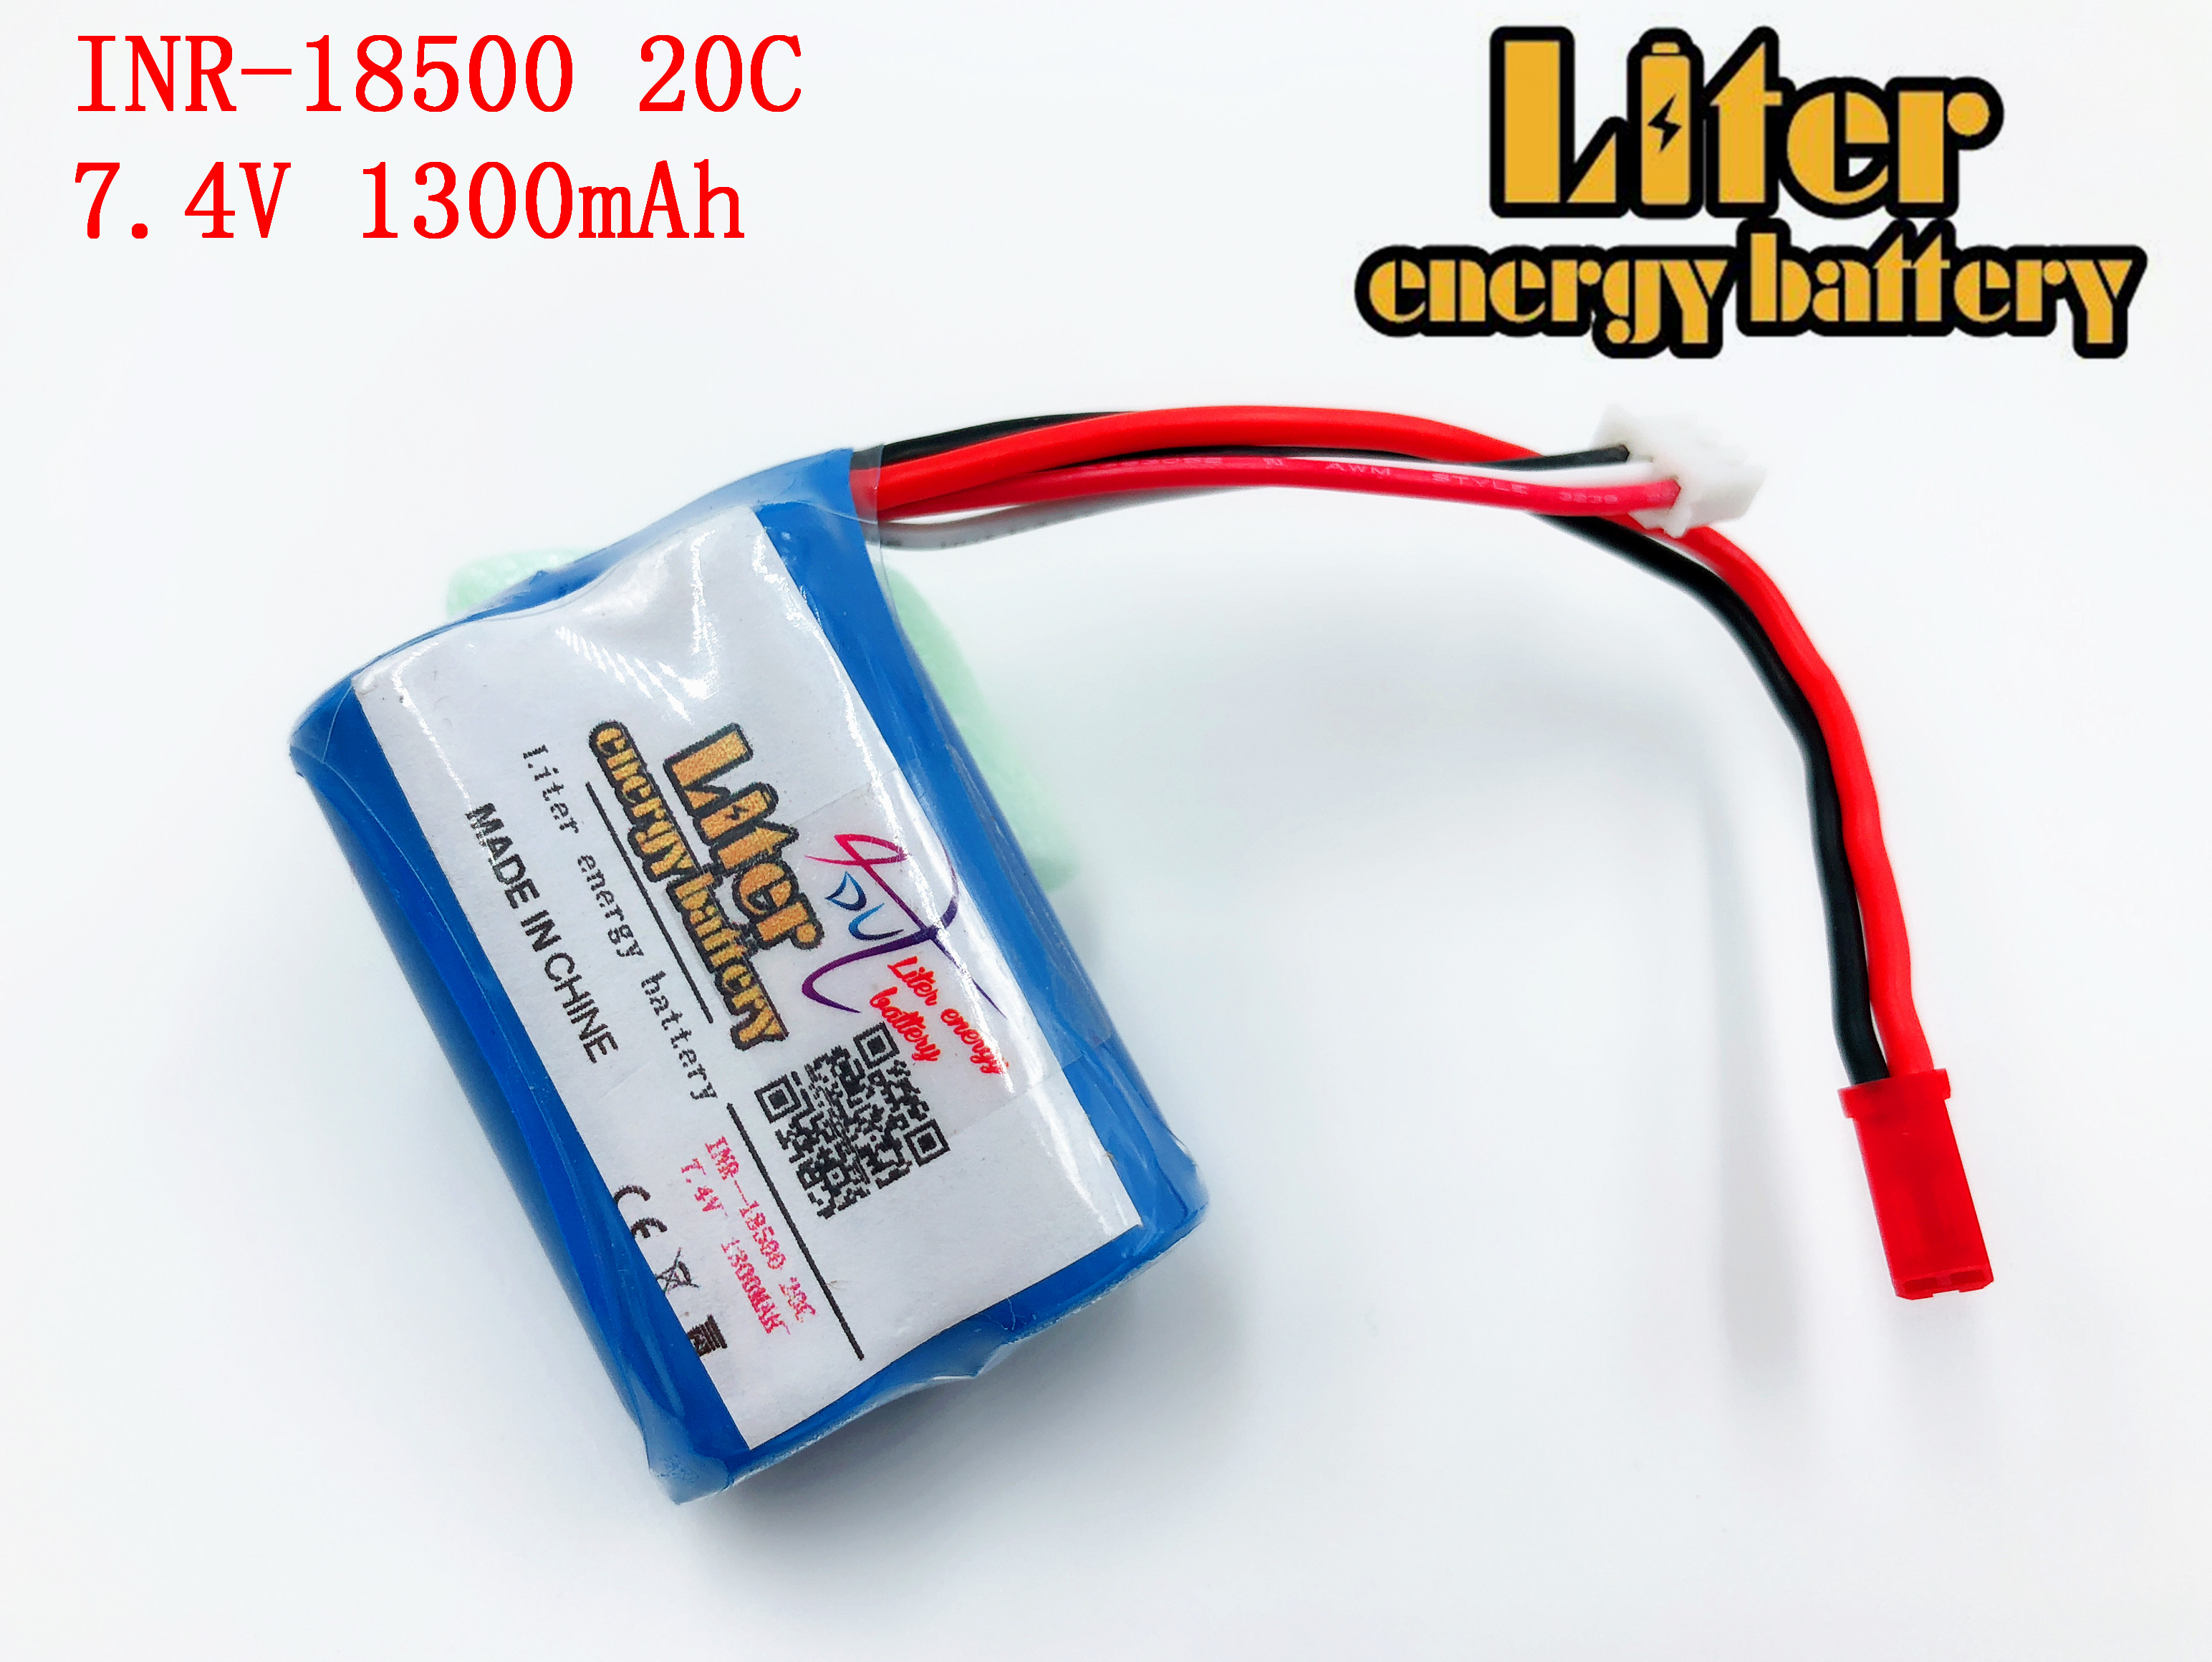 Liter energy battery 7.4V 1300mah 20C 18500 emote control helicopter power lithium battery rechargeable battery pack image